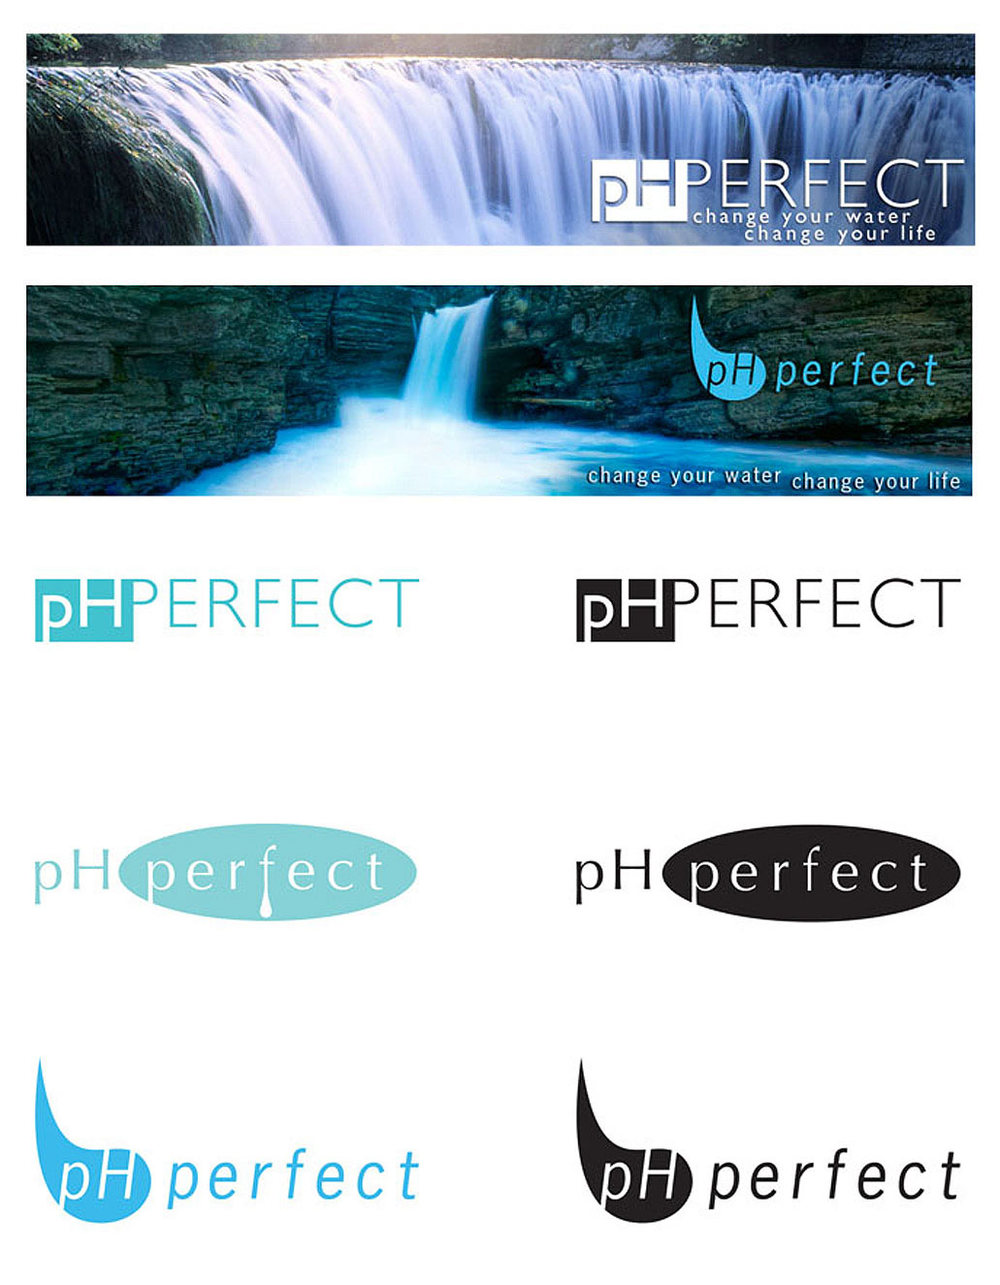 Banner and Logo Design for PH Perfect, 2010.